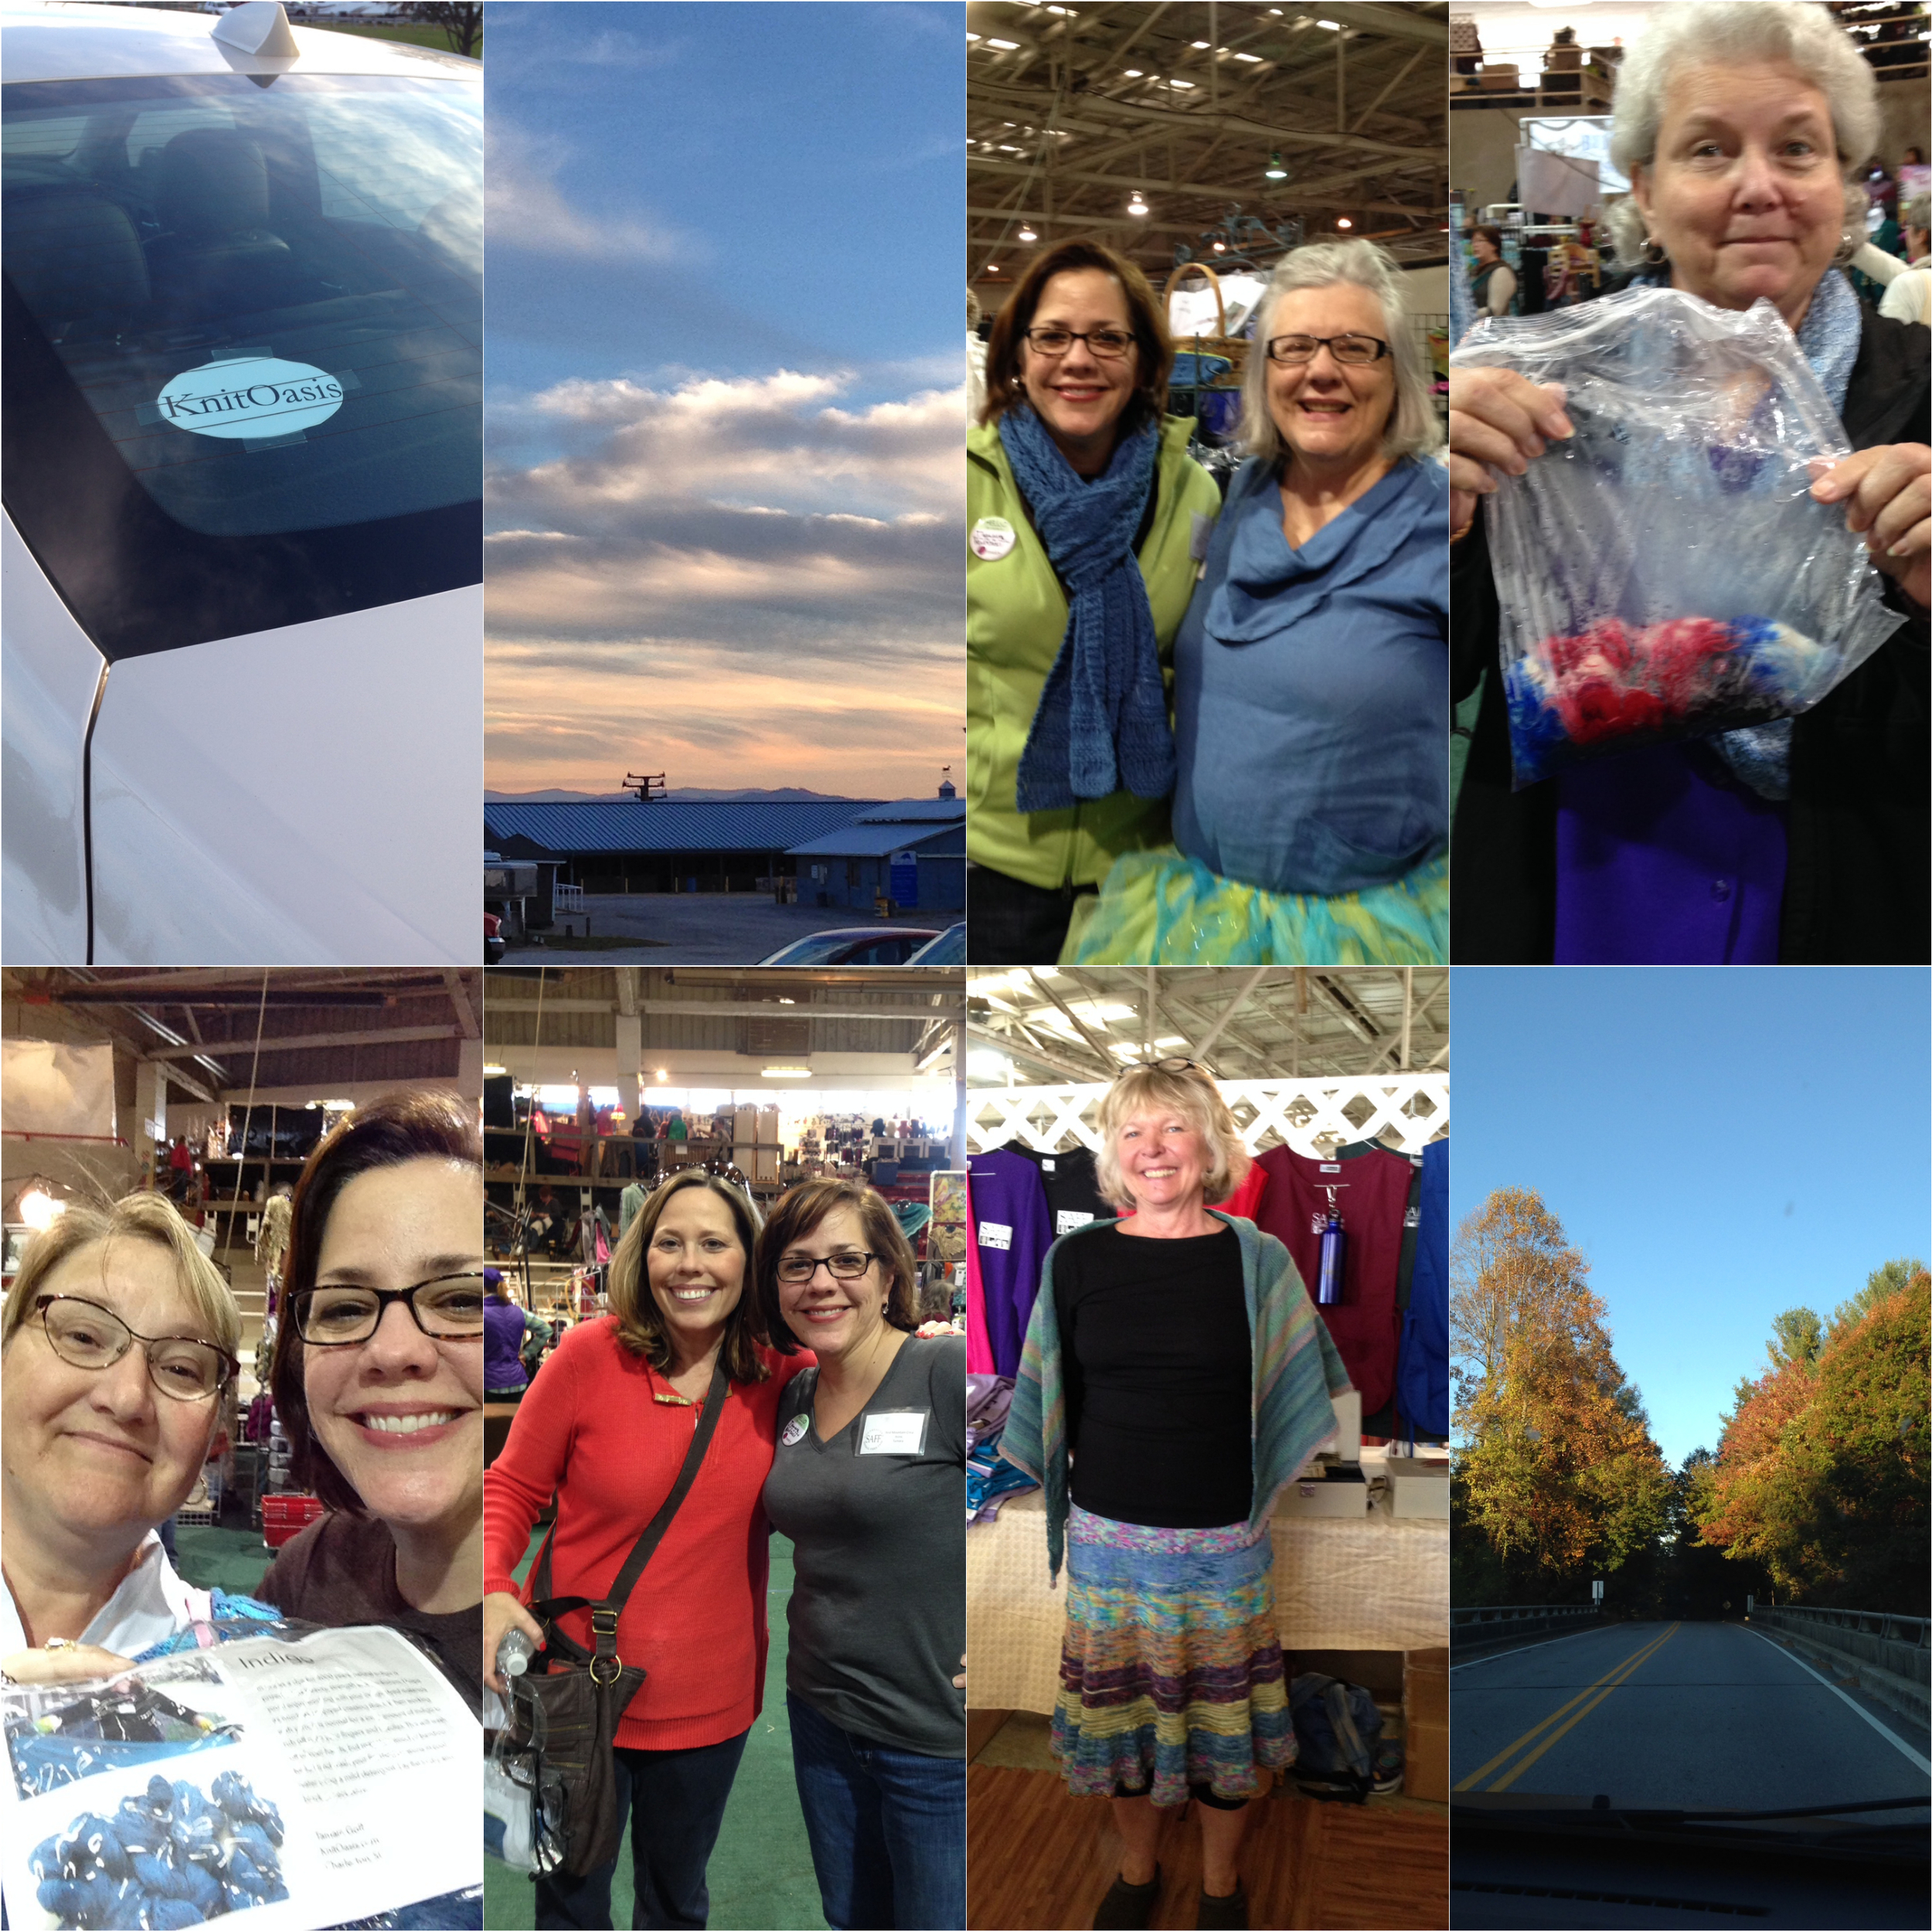 L-R, top row: 1.My knit-mobile for the trip was appropriately decked out. 2. Mountain skies? Yes, please!  3. Me and Pat Lorenz, somehow color-coordinating, ready for SAFF shoppers! 4. Claudia and her awesome sock yarn.  L-R, bottom row: 1. Thank you for buying my kits, Corinne!!! xoxox  2. I met Starr at last year's Knit Inn and decided she fit right in. So cool to see her again! 3. One of the SAFF volunteers in THE skirt. 4. The colors, oh my!!